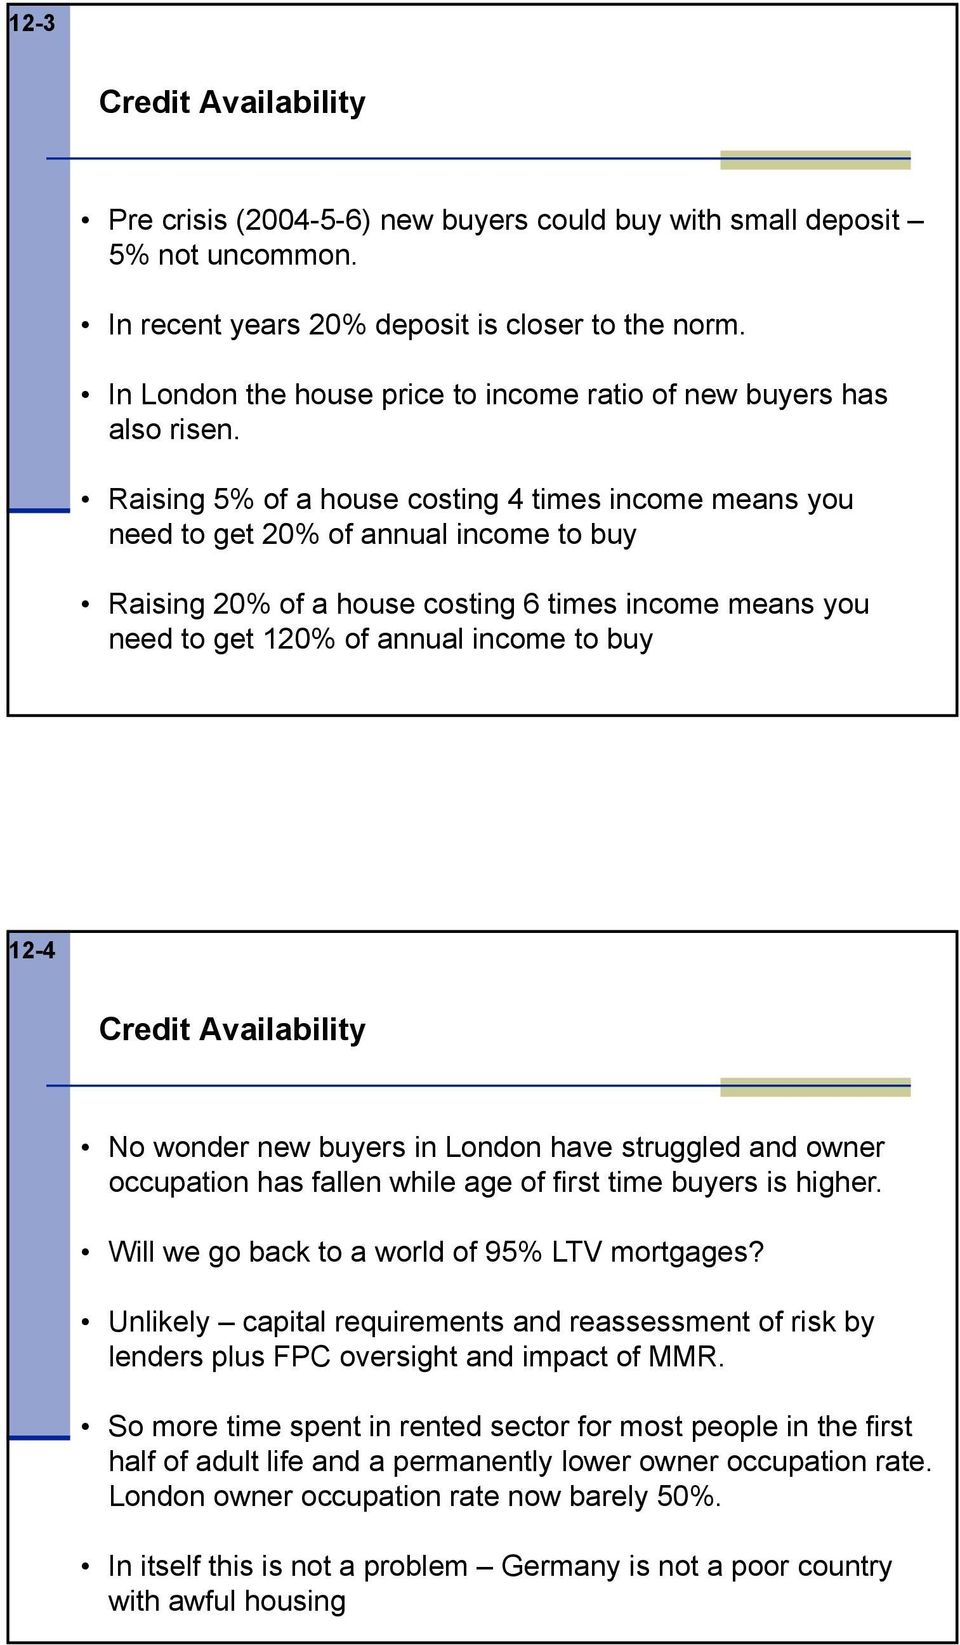 Raising 5% of a house costing 4 times income means you need to get 20% of annual income to buy Raising 20% of a house costing 6 times income means you need to get 120% of annual income to buy 12-4